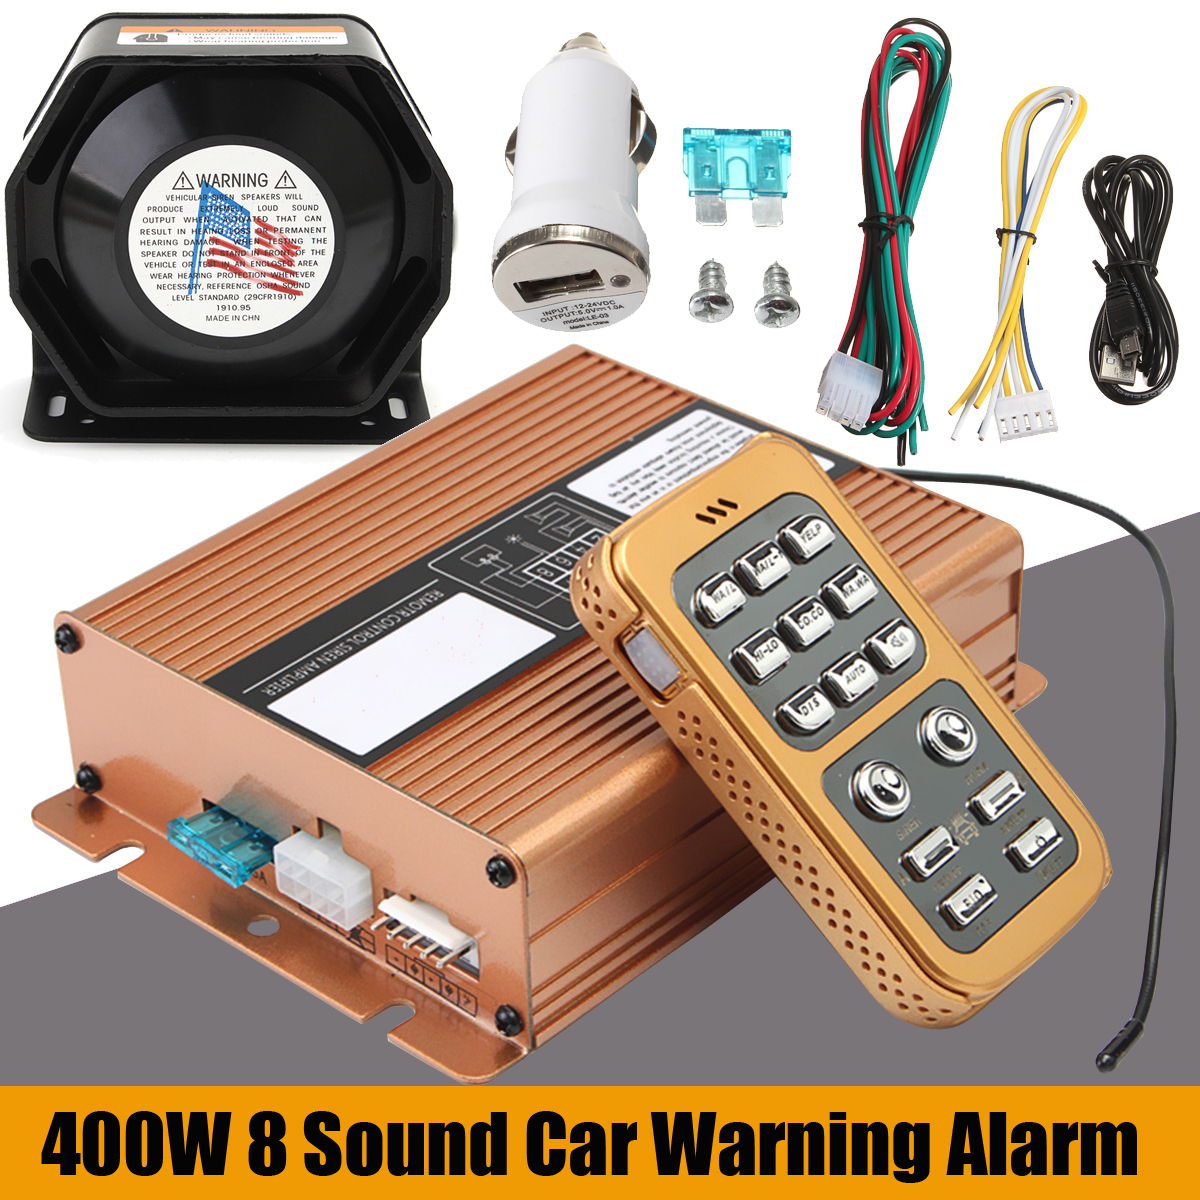 400W 8 Sound Loud Warning Alarm Police Siren Horn Speaker MIC System